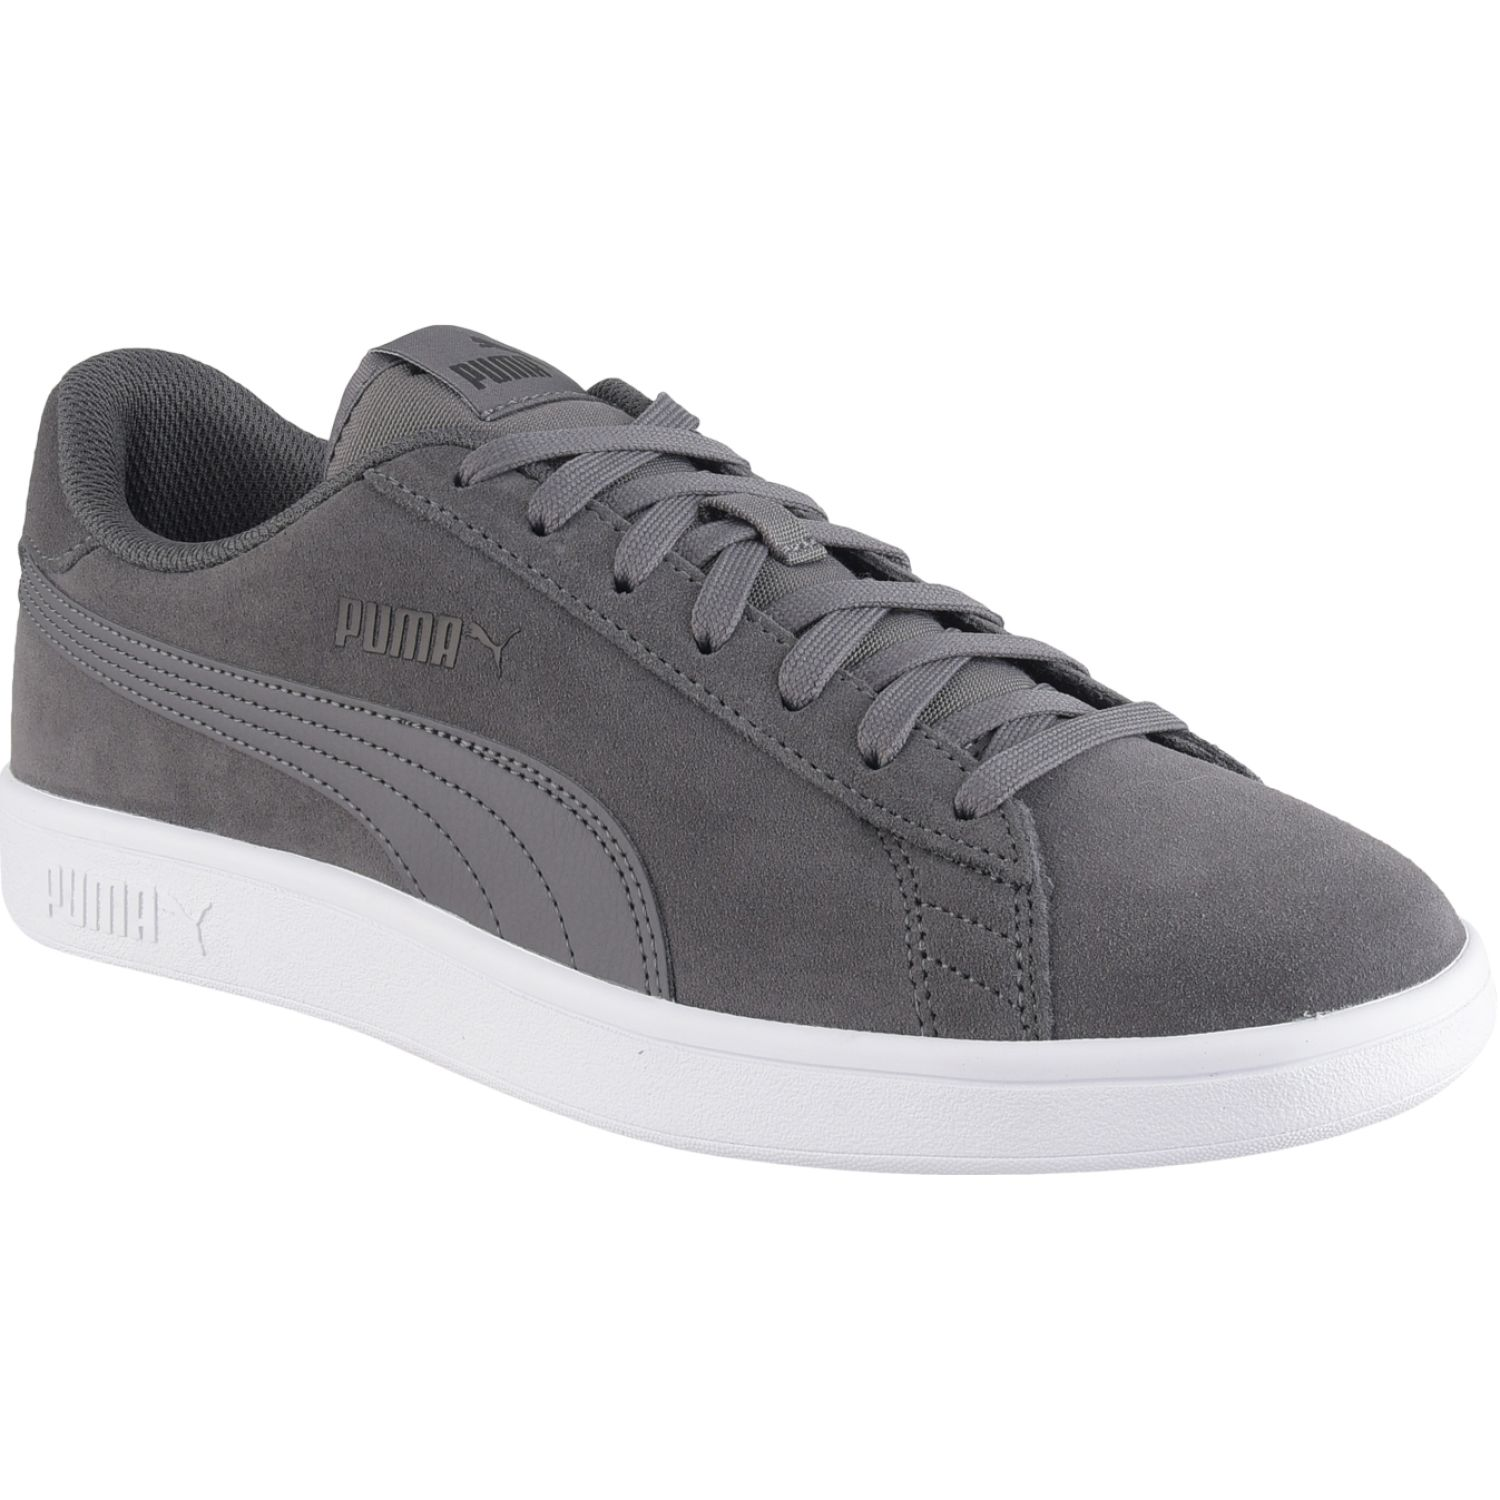 Puma puma smash v2 Gris Walking